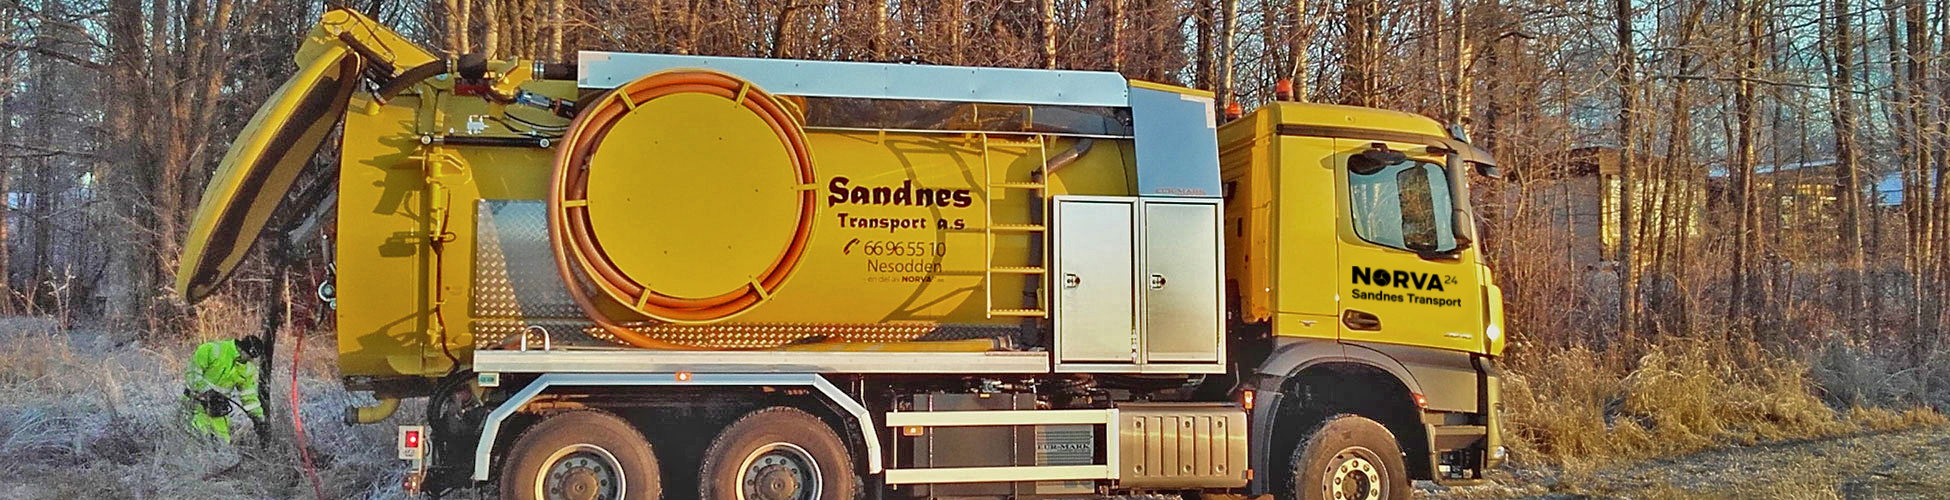 Norva24 Sandnes Transport